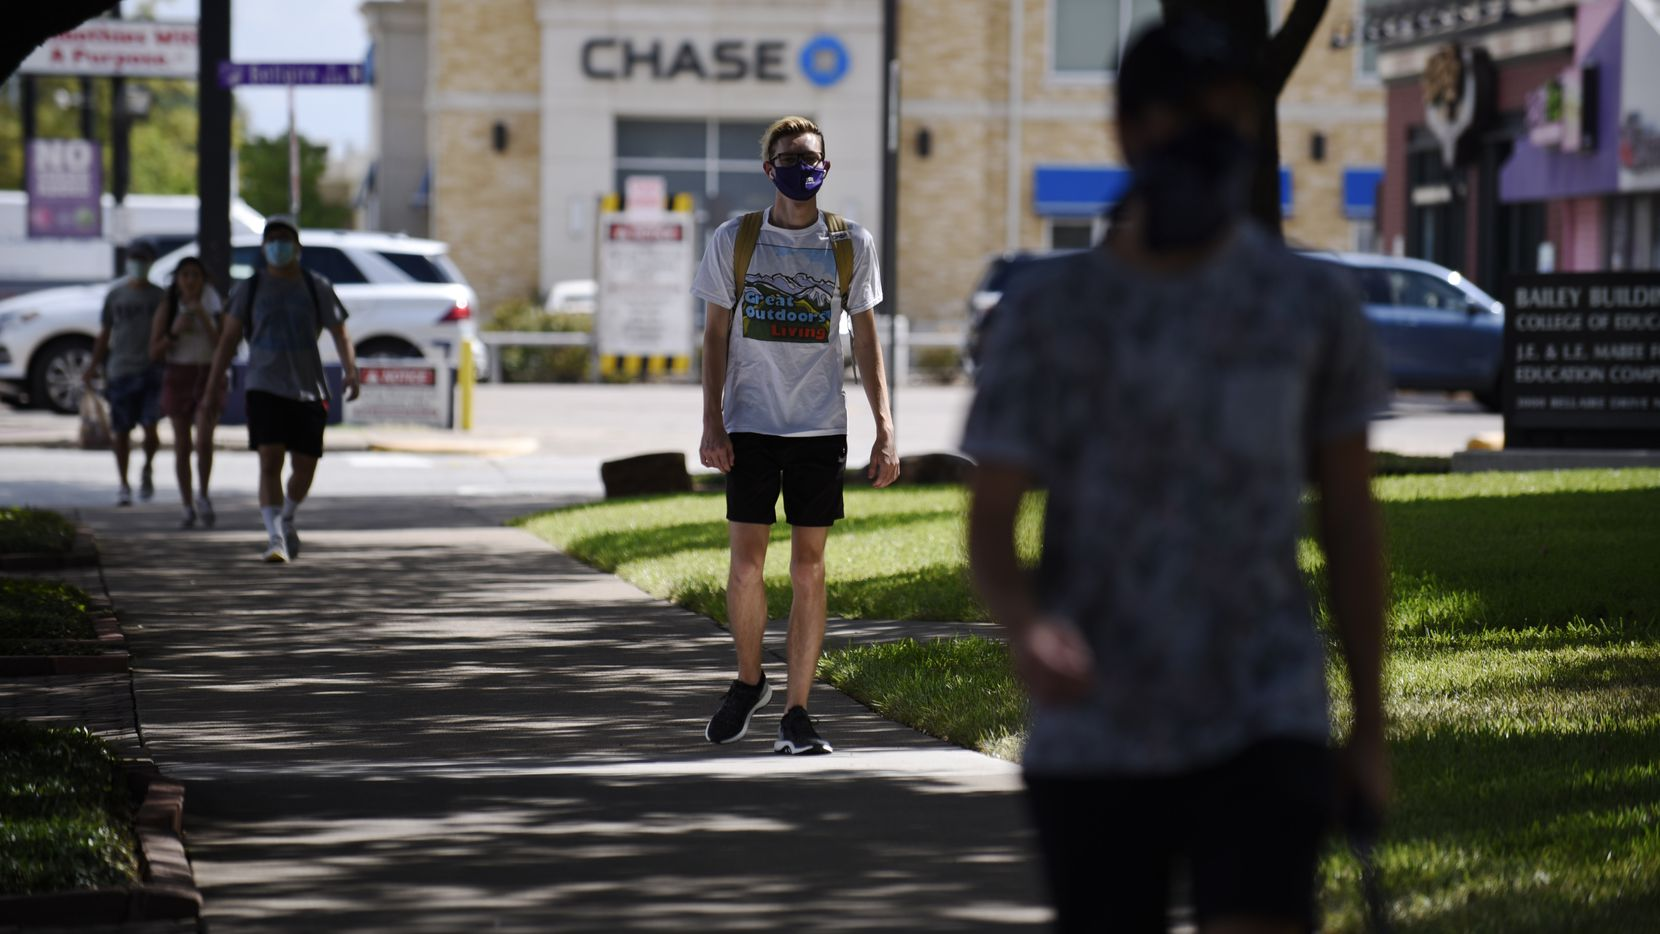 Texas Christian University students walk towards the Clark Hall dormitory on the campus of TCU in Fort Worth, Aug. 27, 2020. TCU went from 111 COVID-19 cases on Monday to 360 cases on today. Ben Torres/Special Contributor